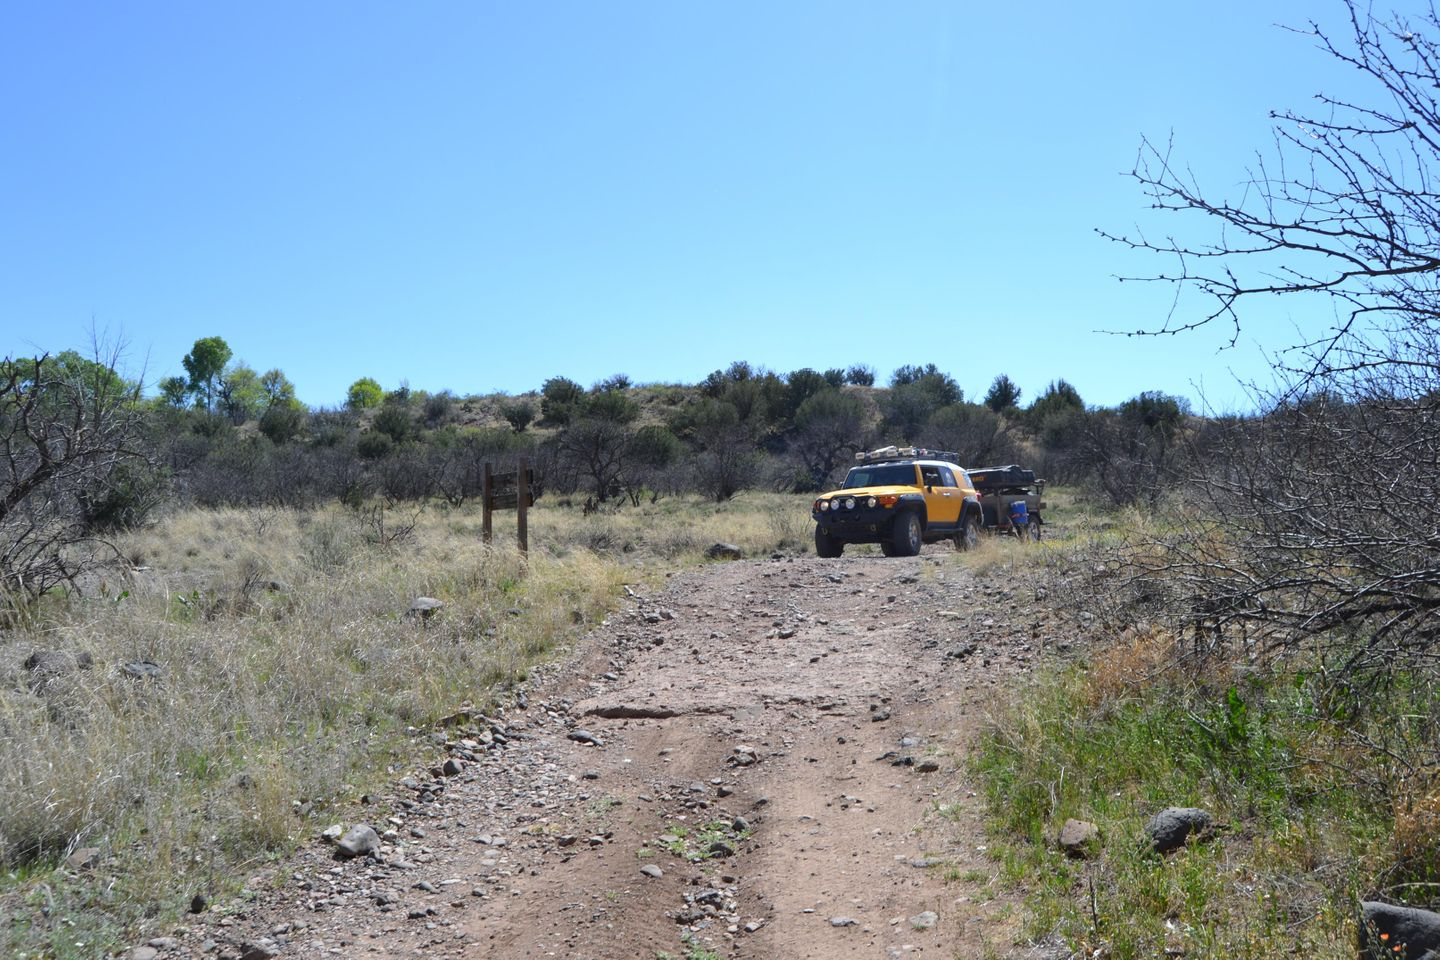 Jackson Cabin/Muleshoe Ranch Road - Waypoint 7: Bass Canyon - Cabin/Riparian Area  15.0